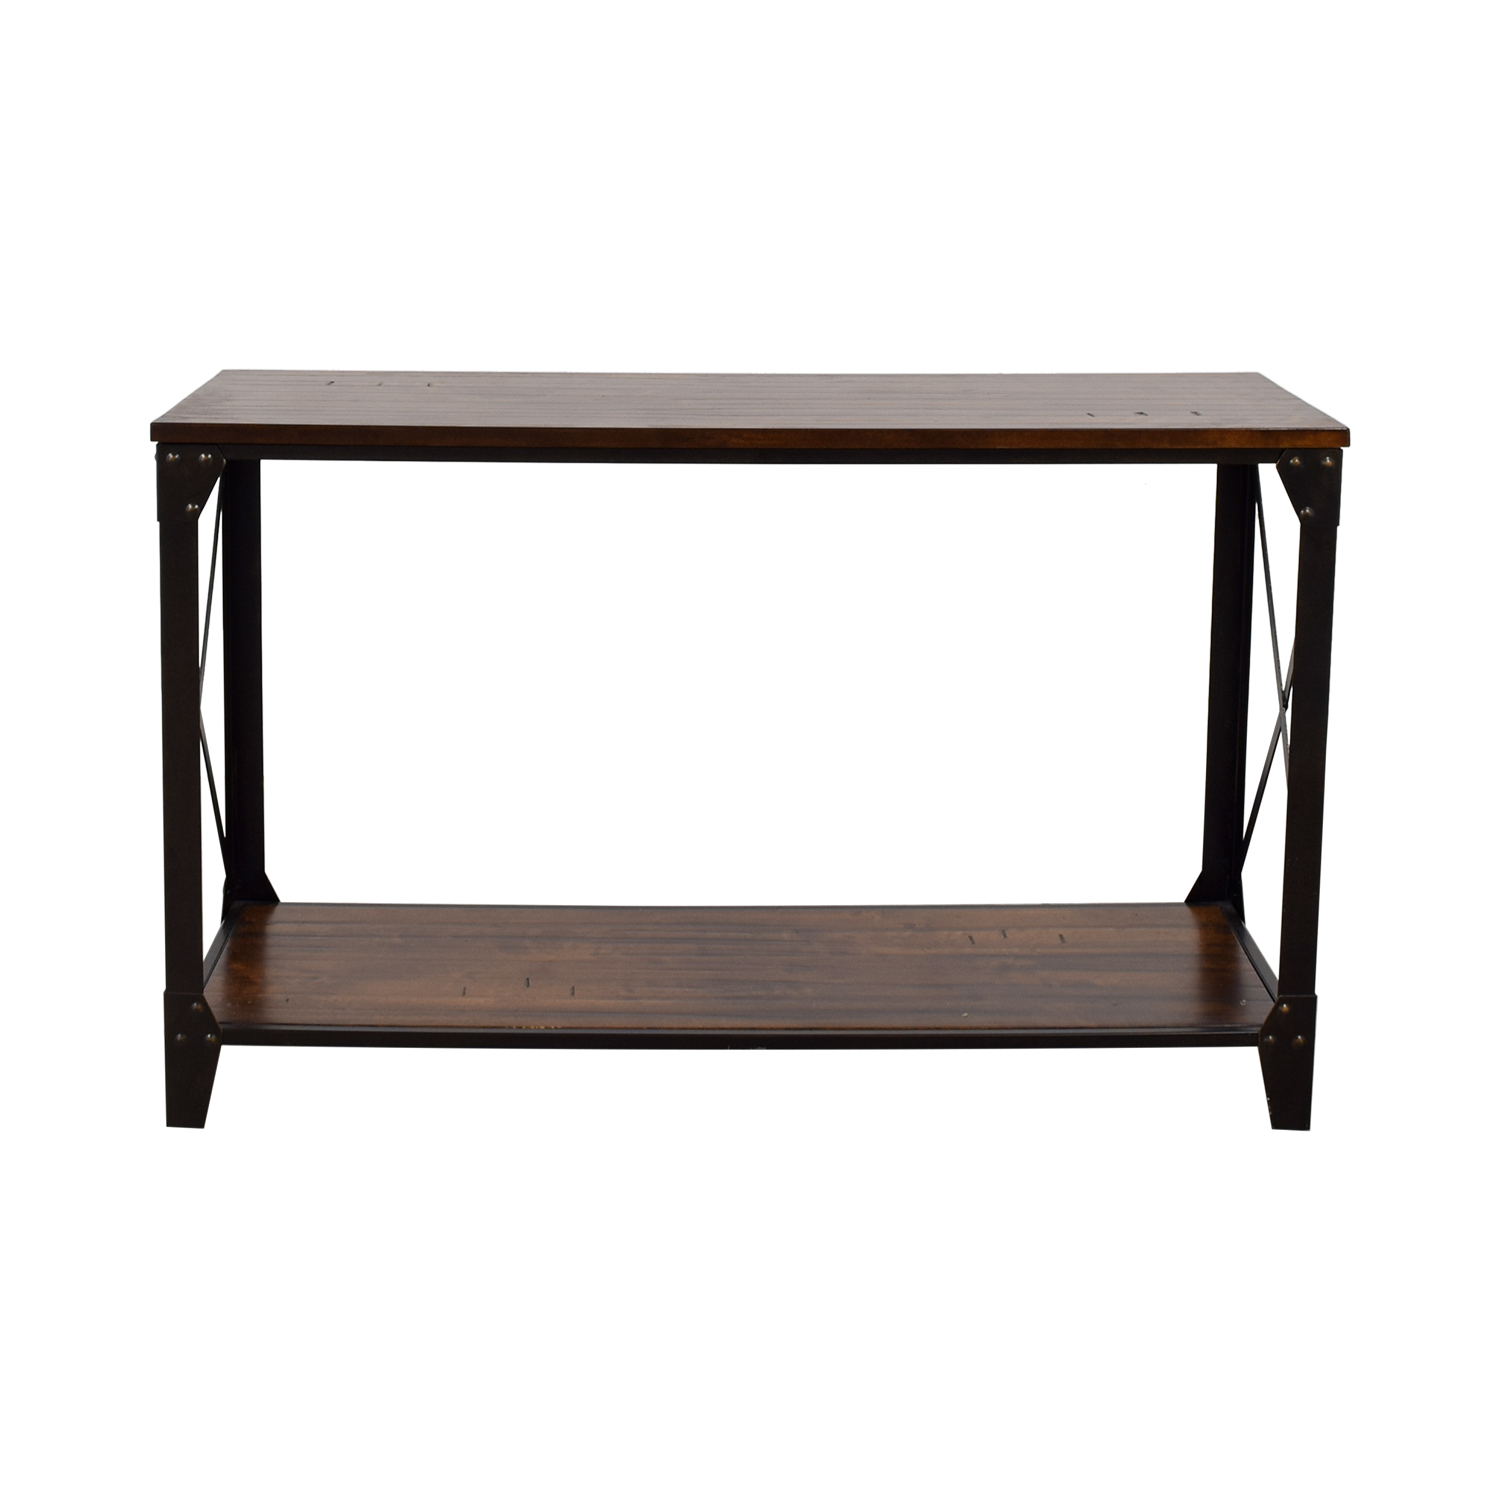 Metal Rustic Wooden Console Coupon